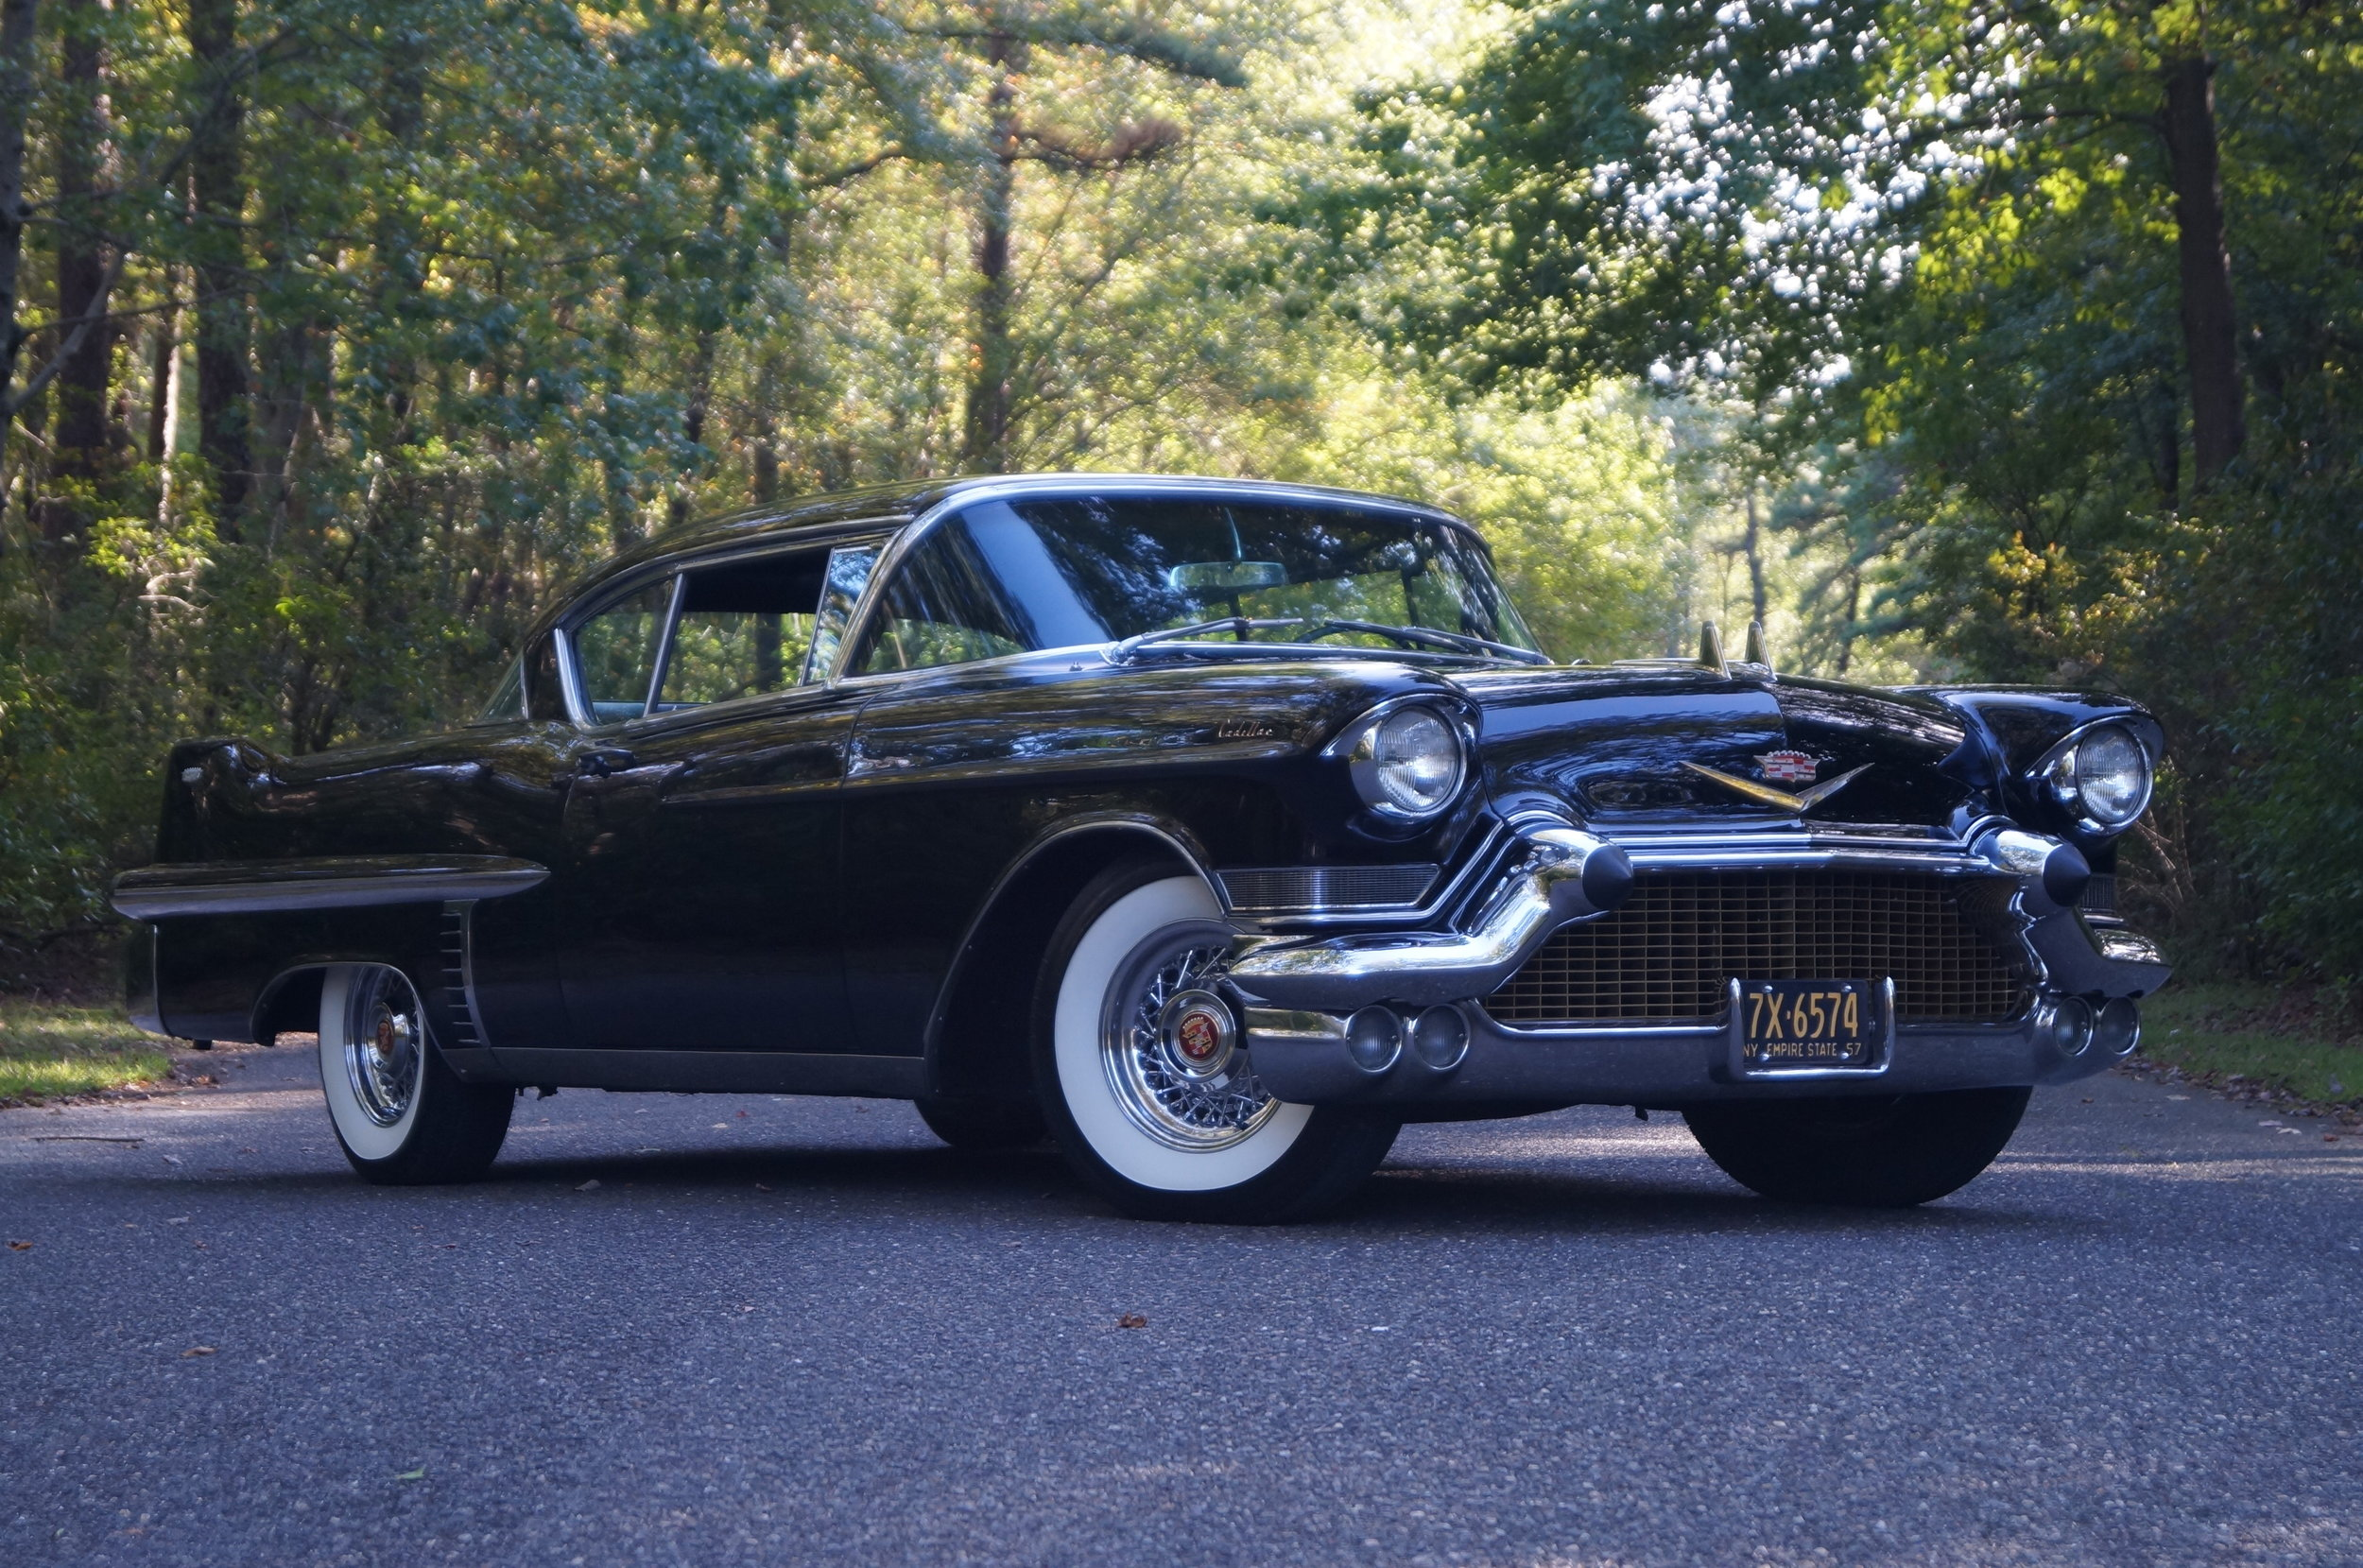 1957 Cadillac Coupe deVille - Johnny Cash famously sang about Cadillacs stating,